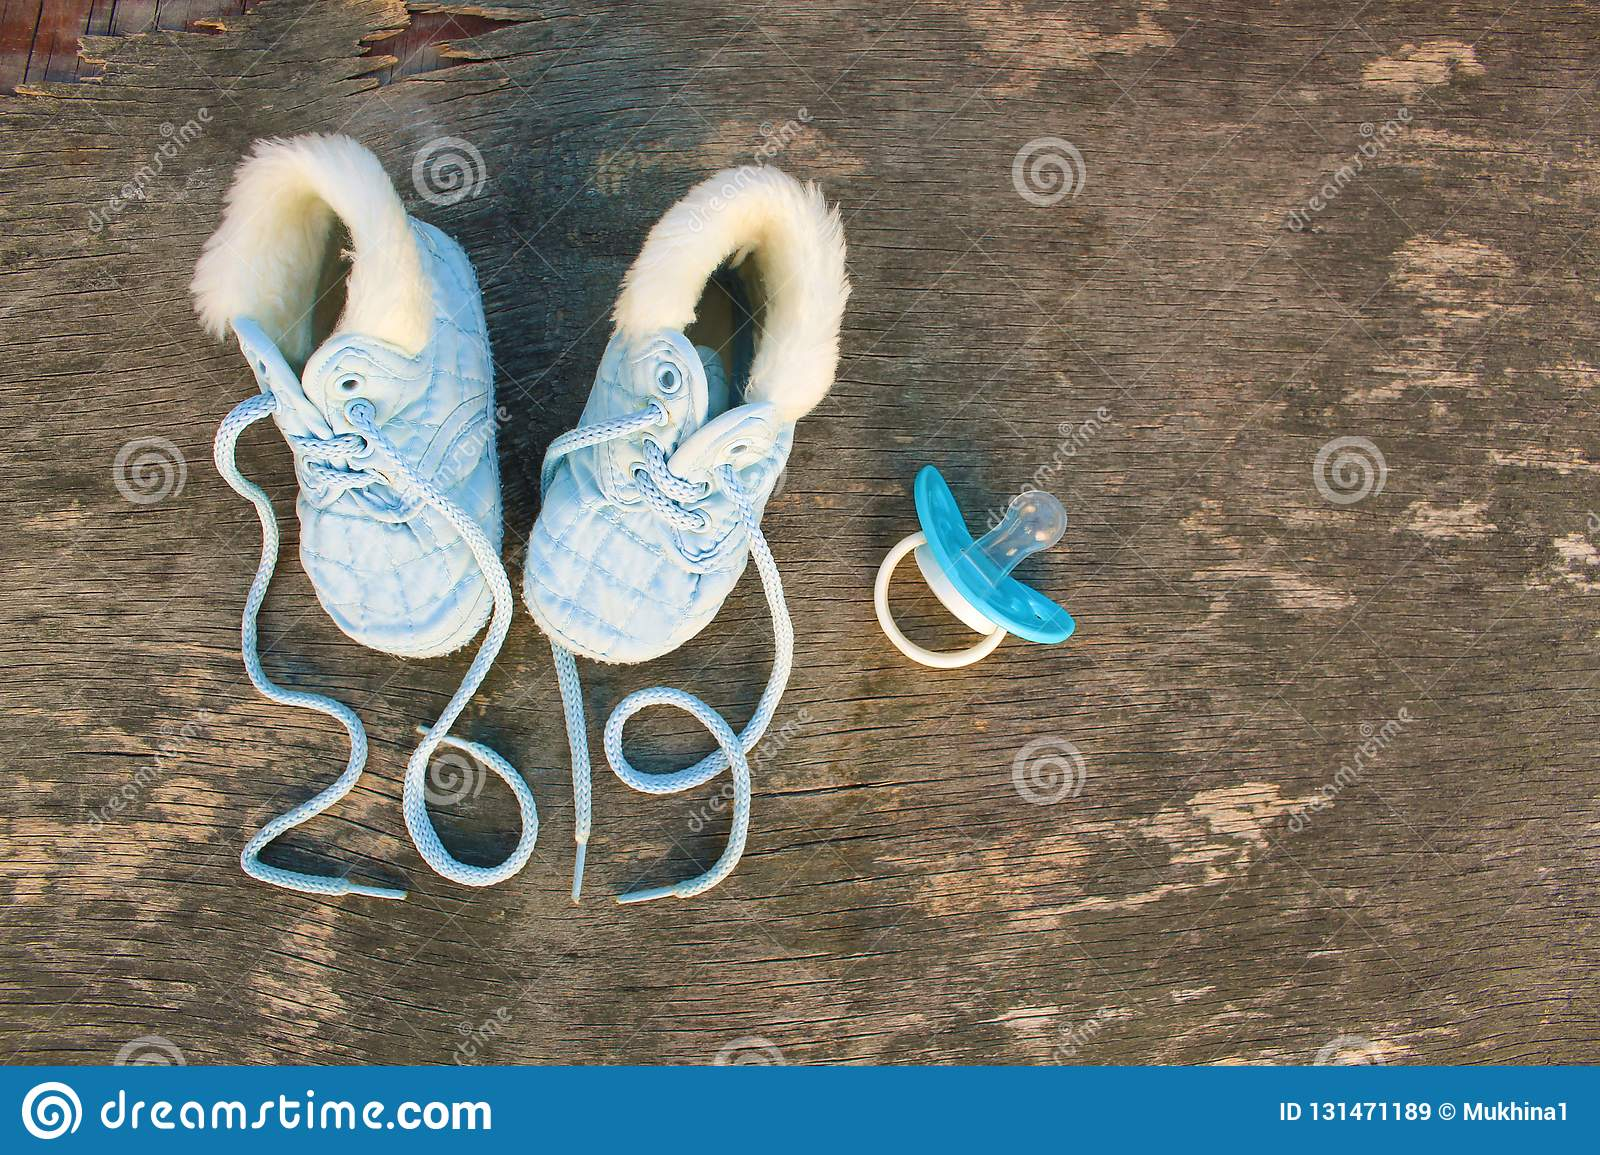 e068c9858ab3 2019 new year written laces of children`s shoes and pacifier on old wooden  background